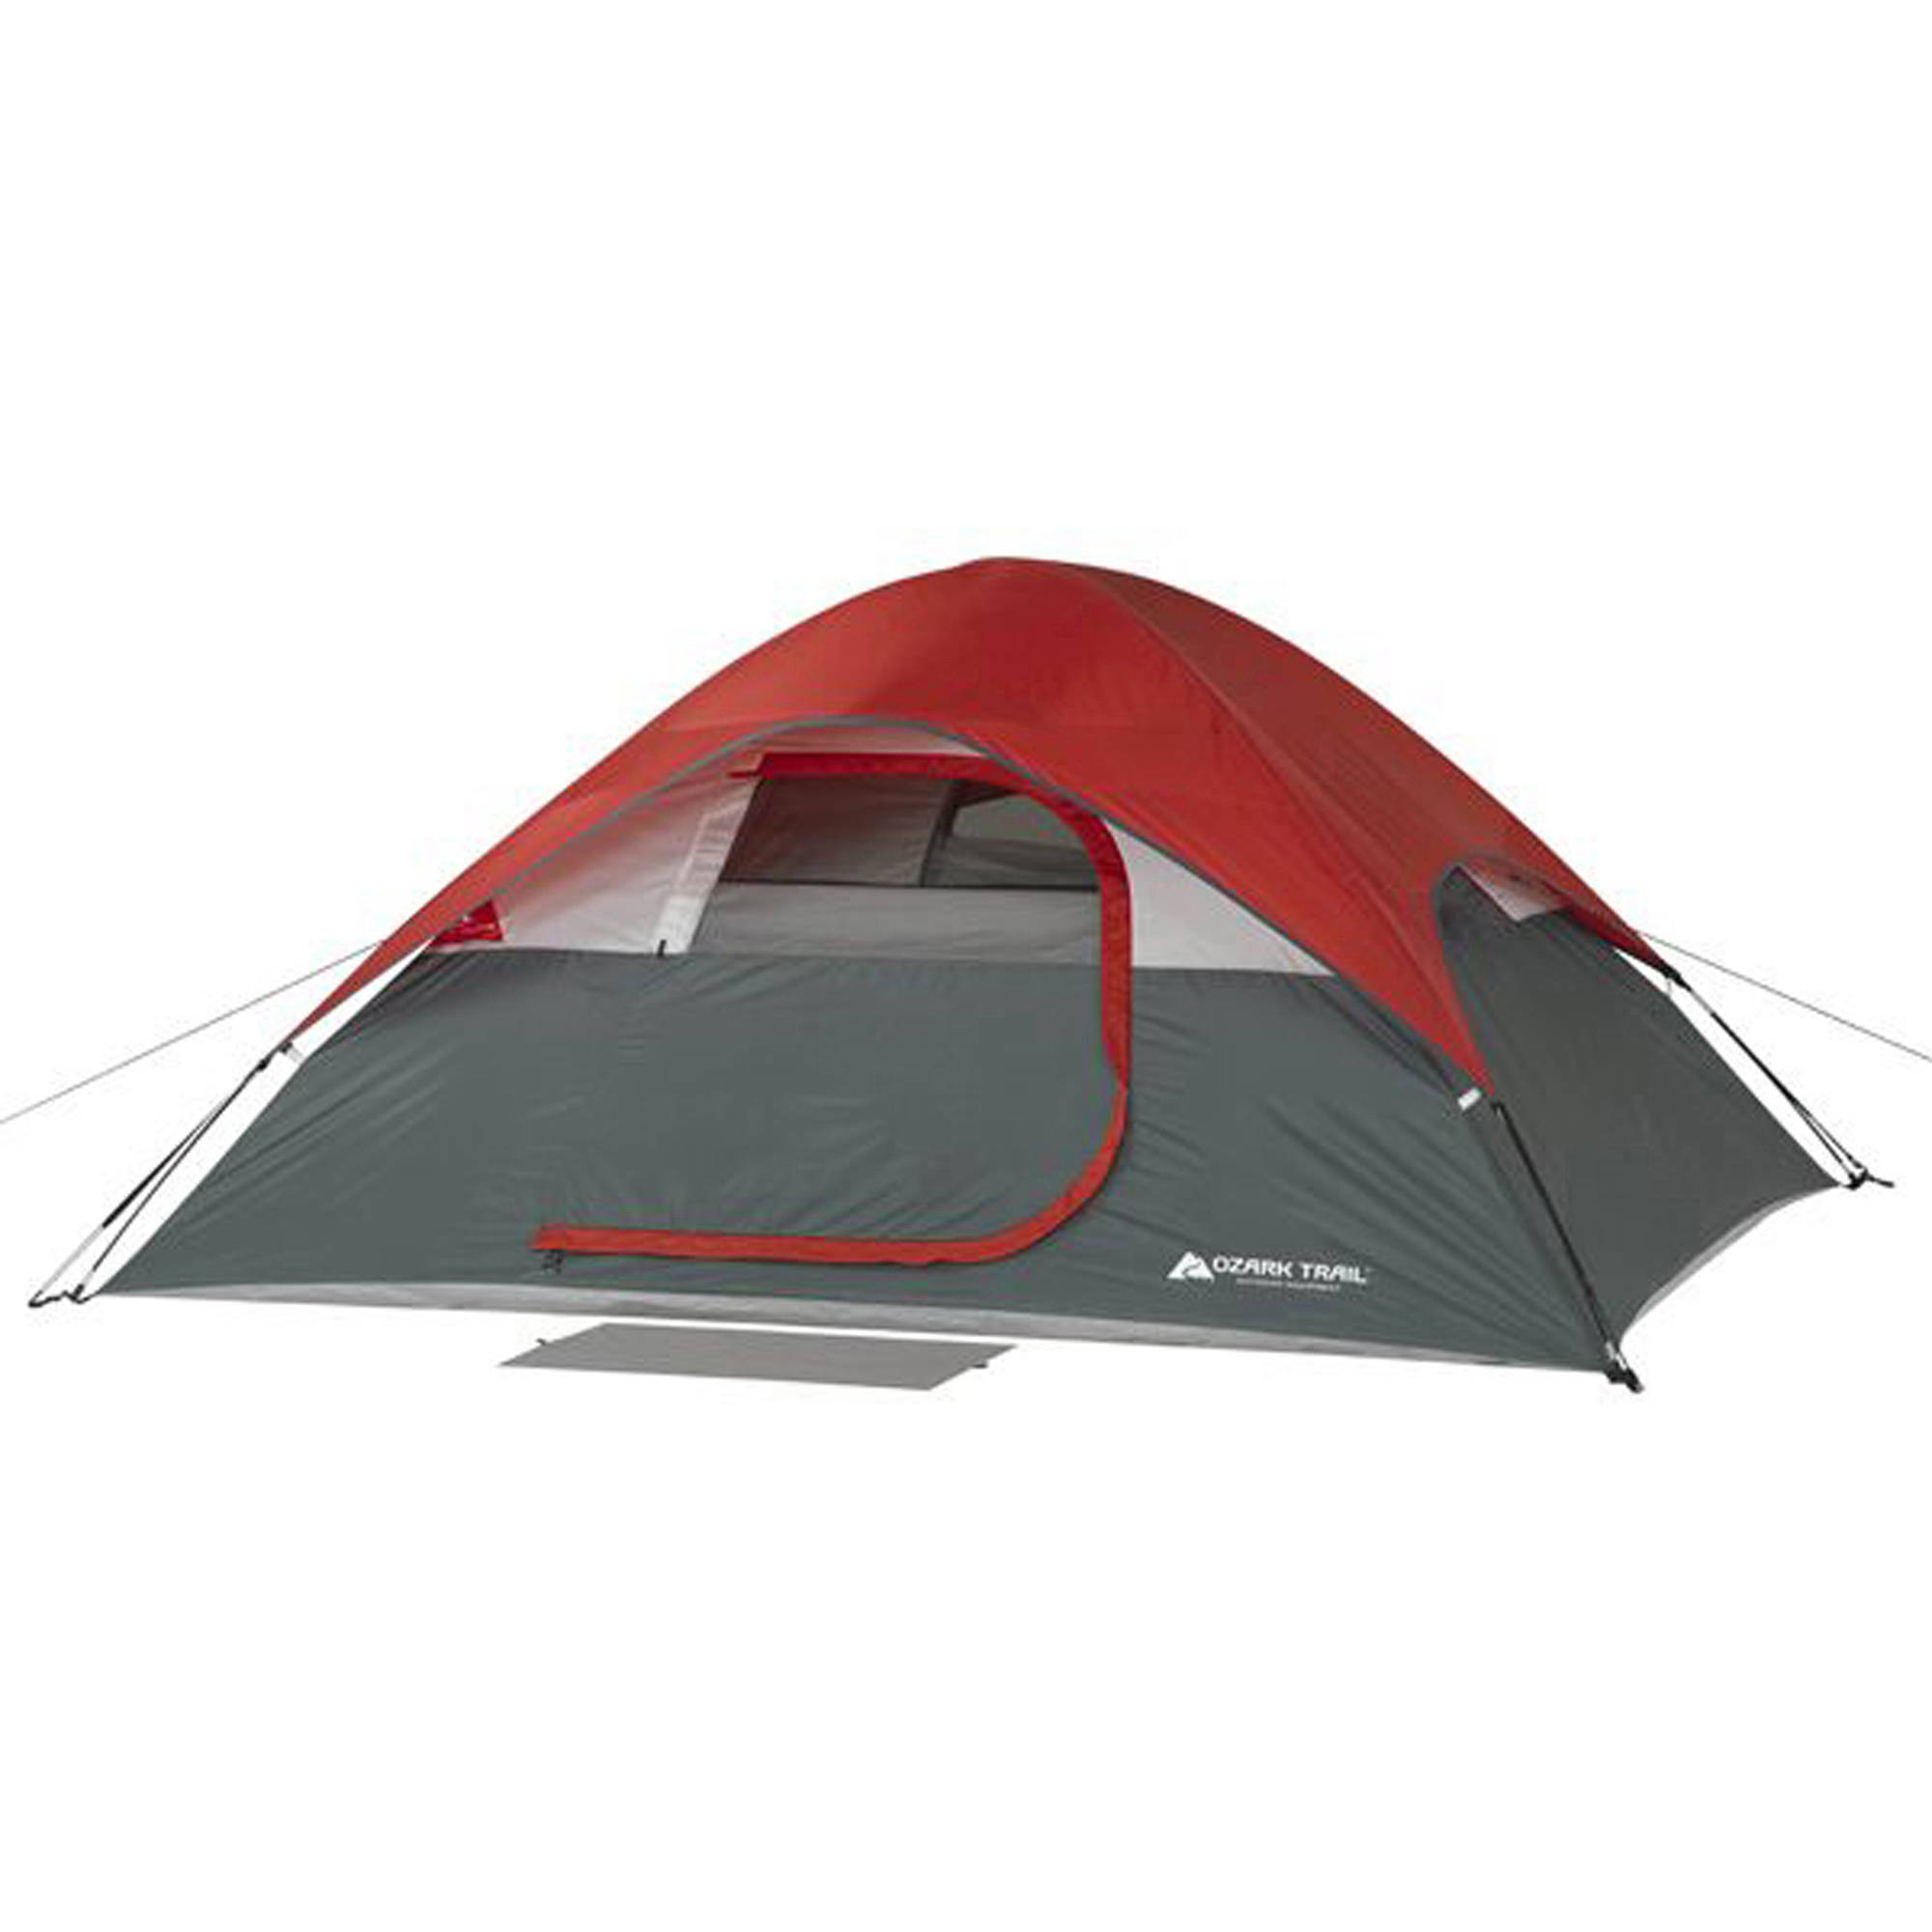 sc 1 st  Walmart : best 4 person 3 season tent - memphite.com